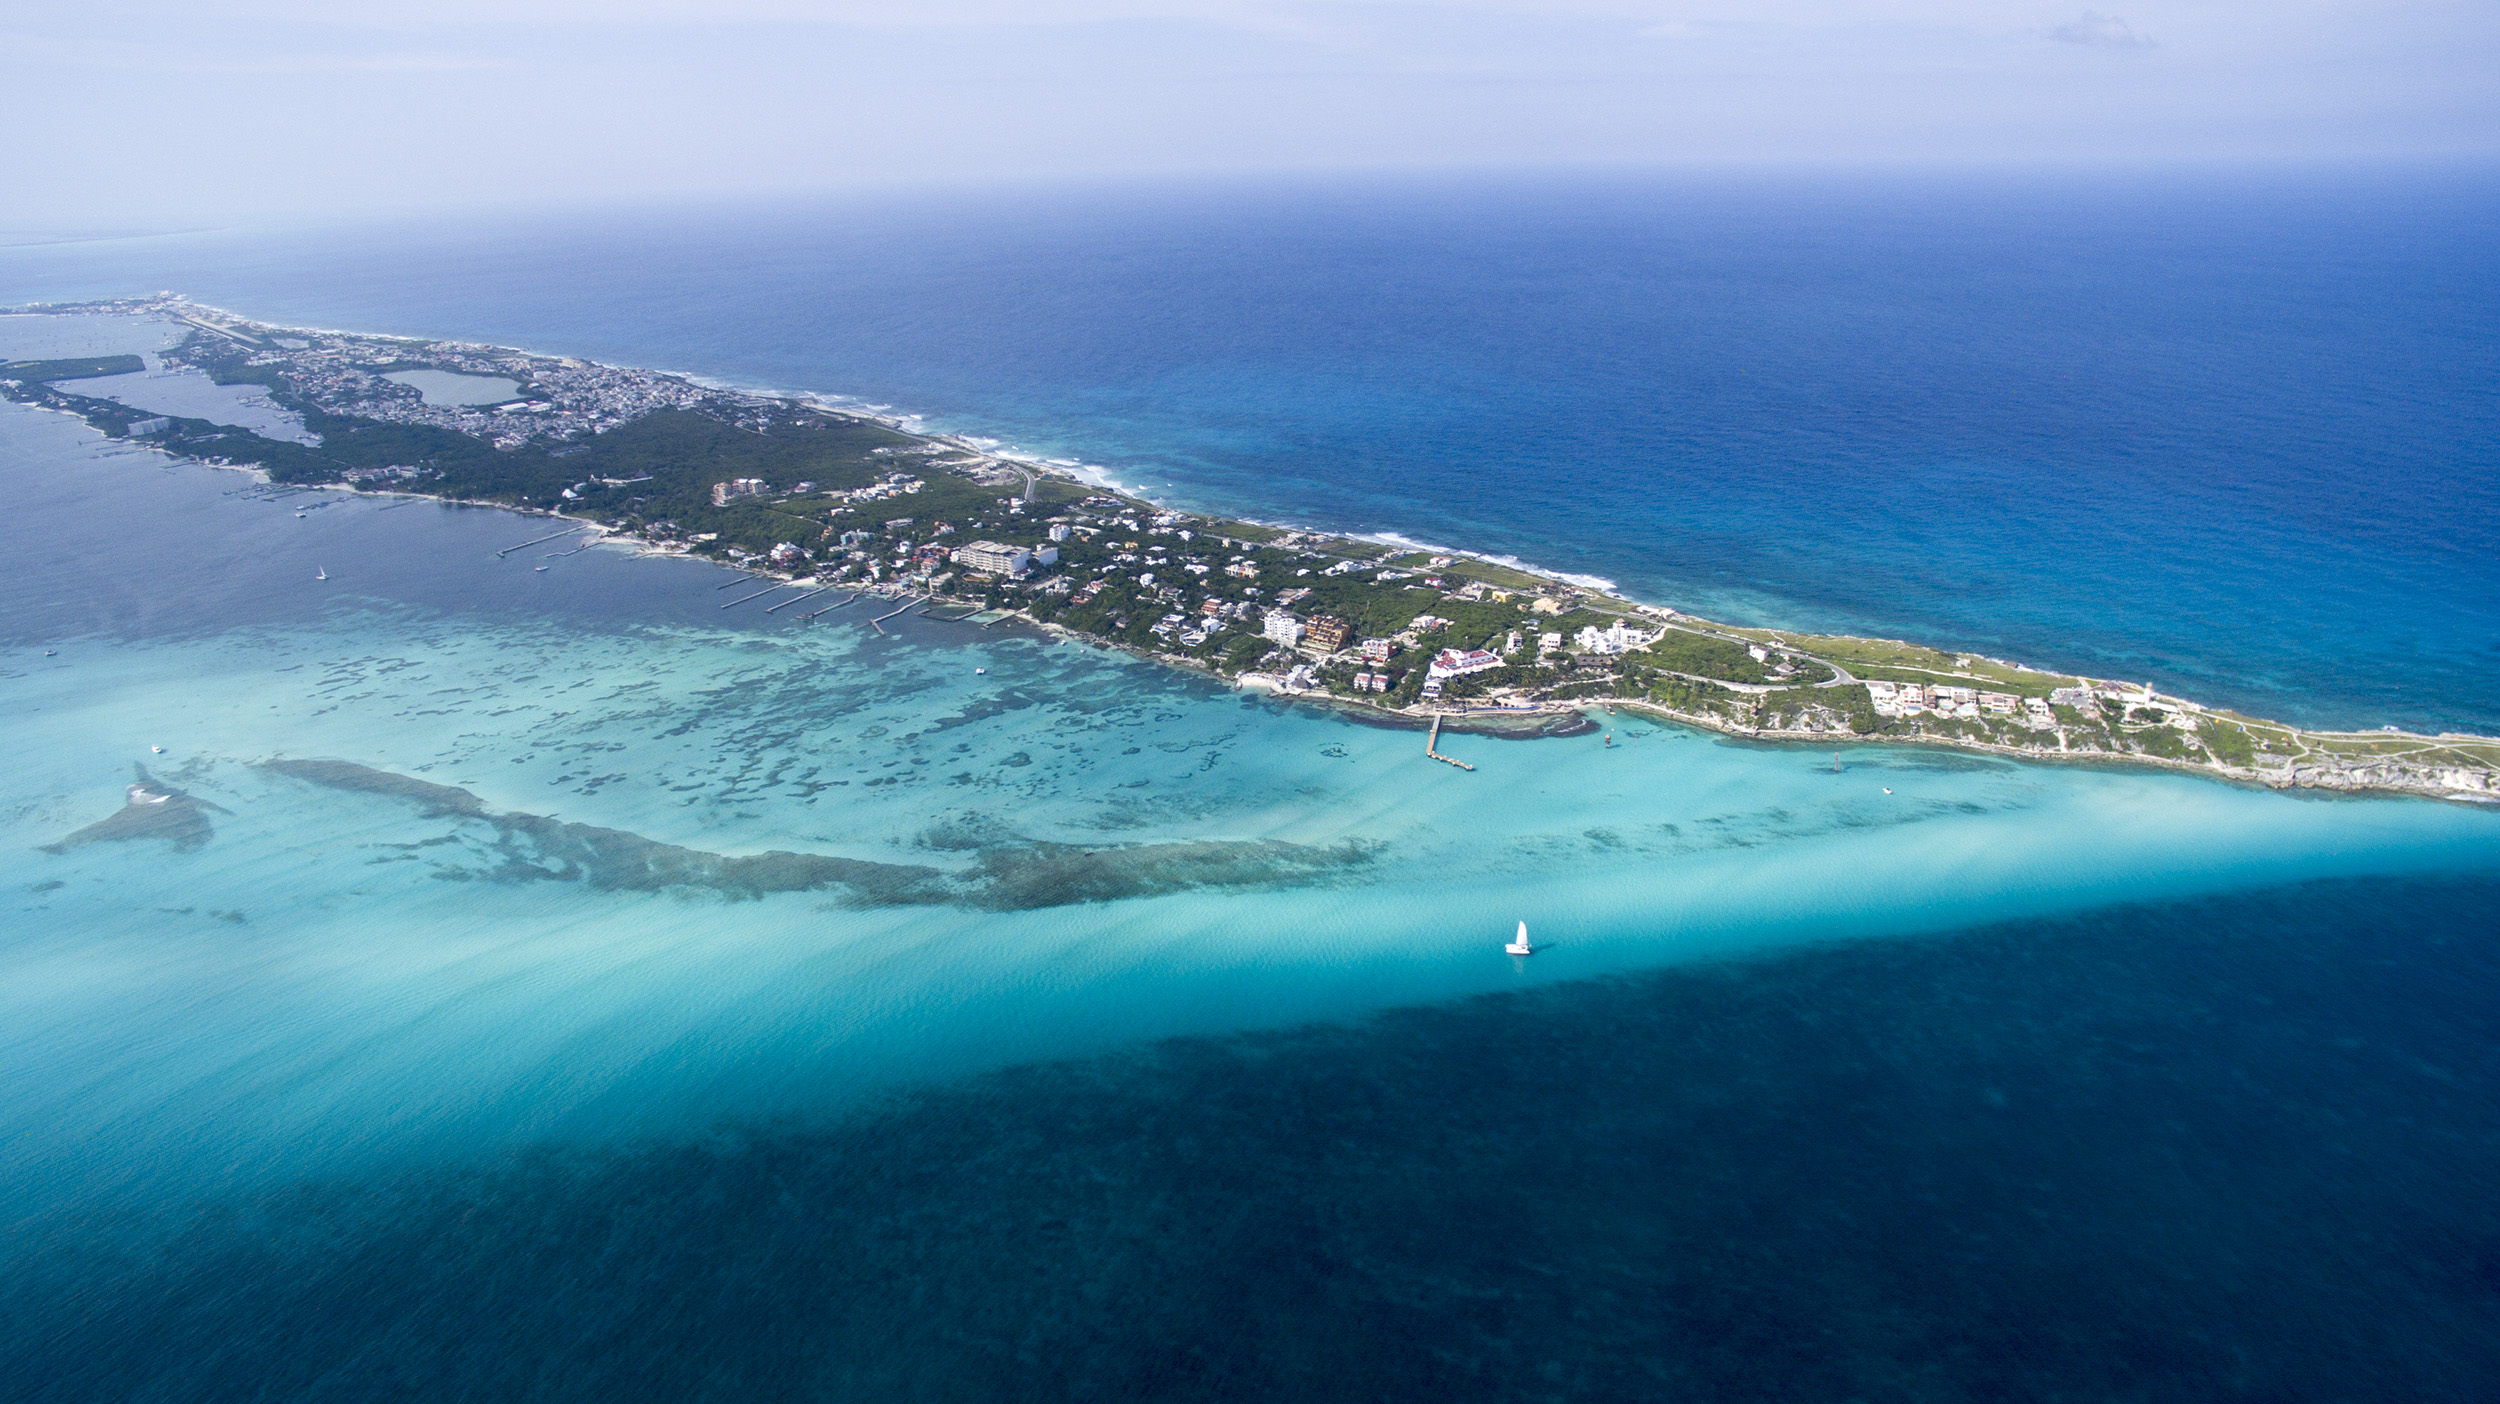 Comple island of Isla Mujeres Mexico from an Aerial Photo